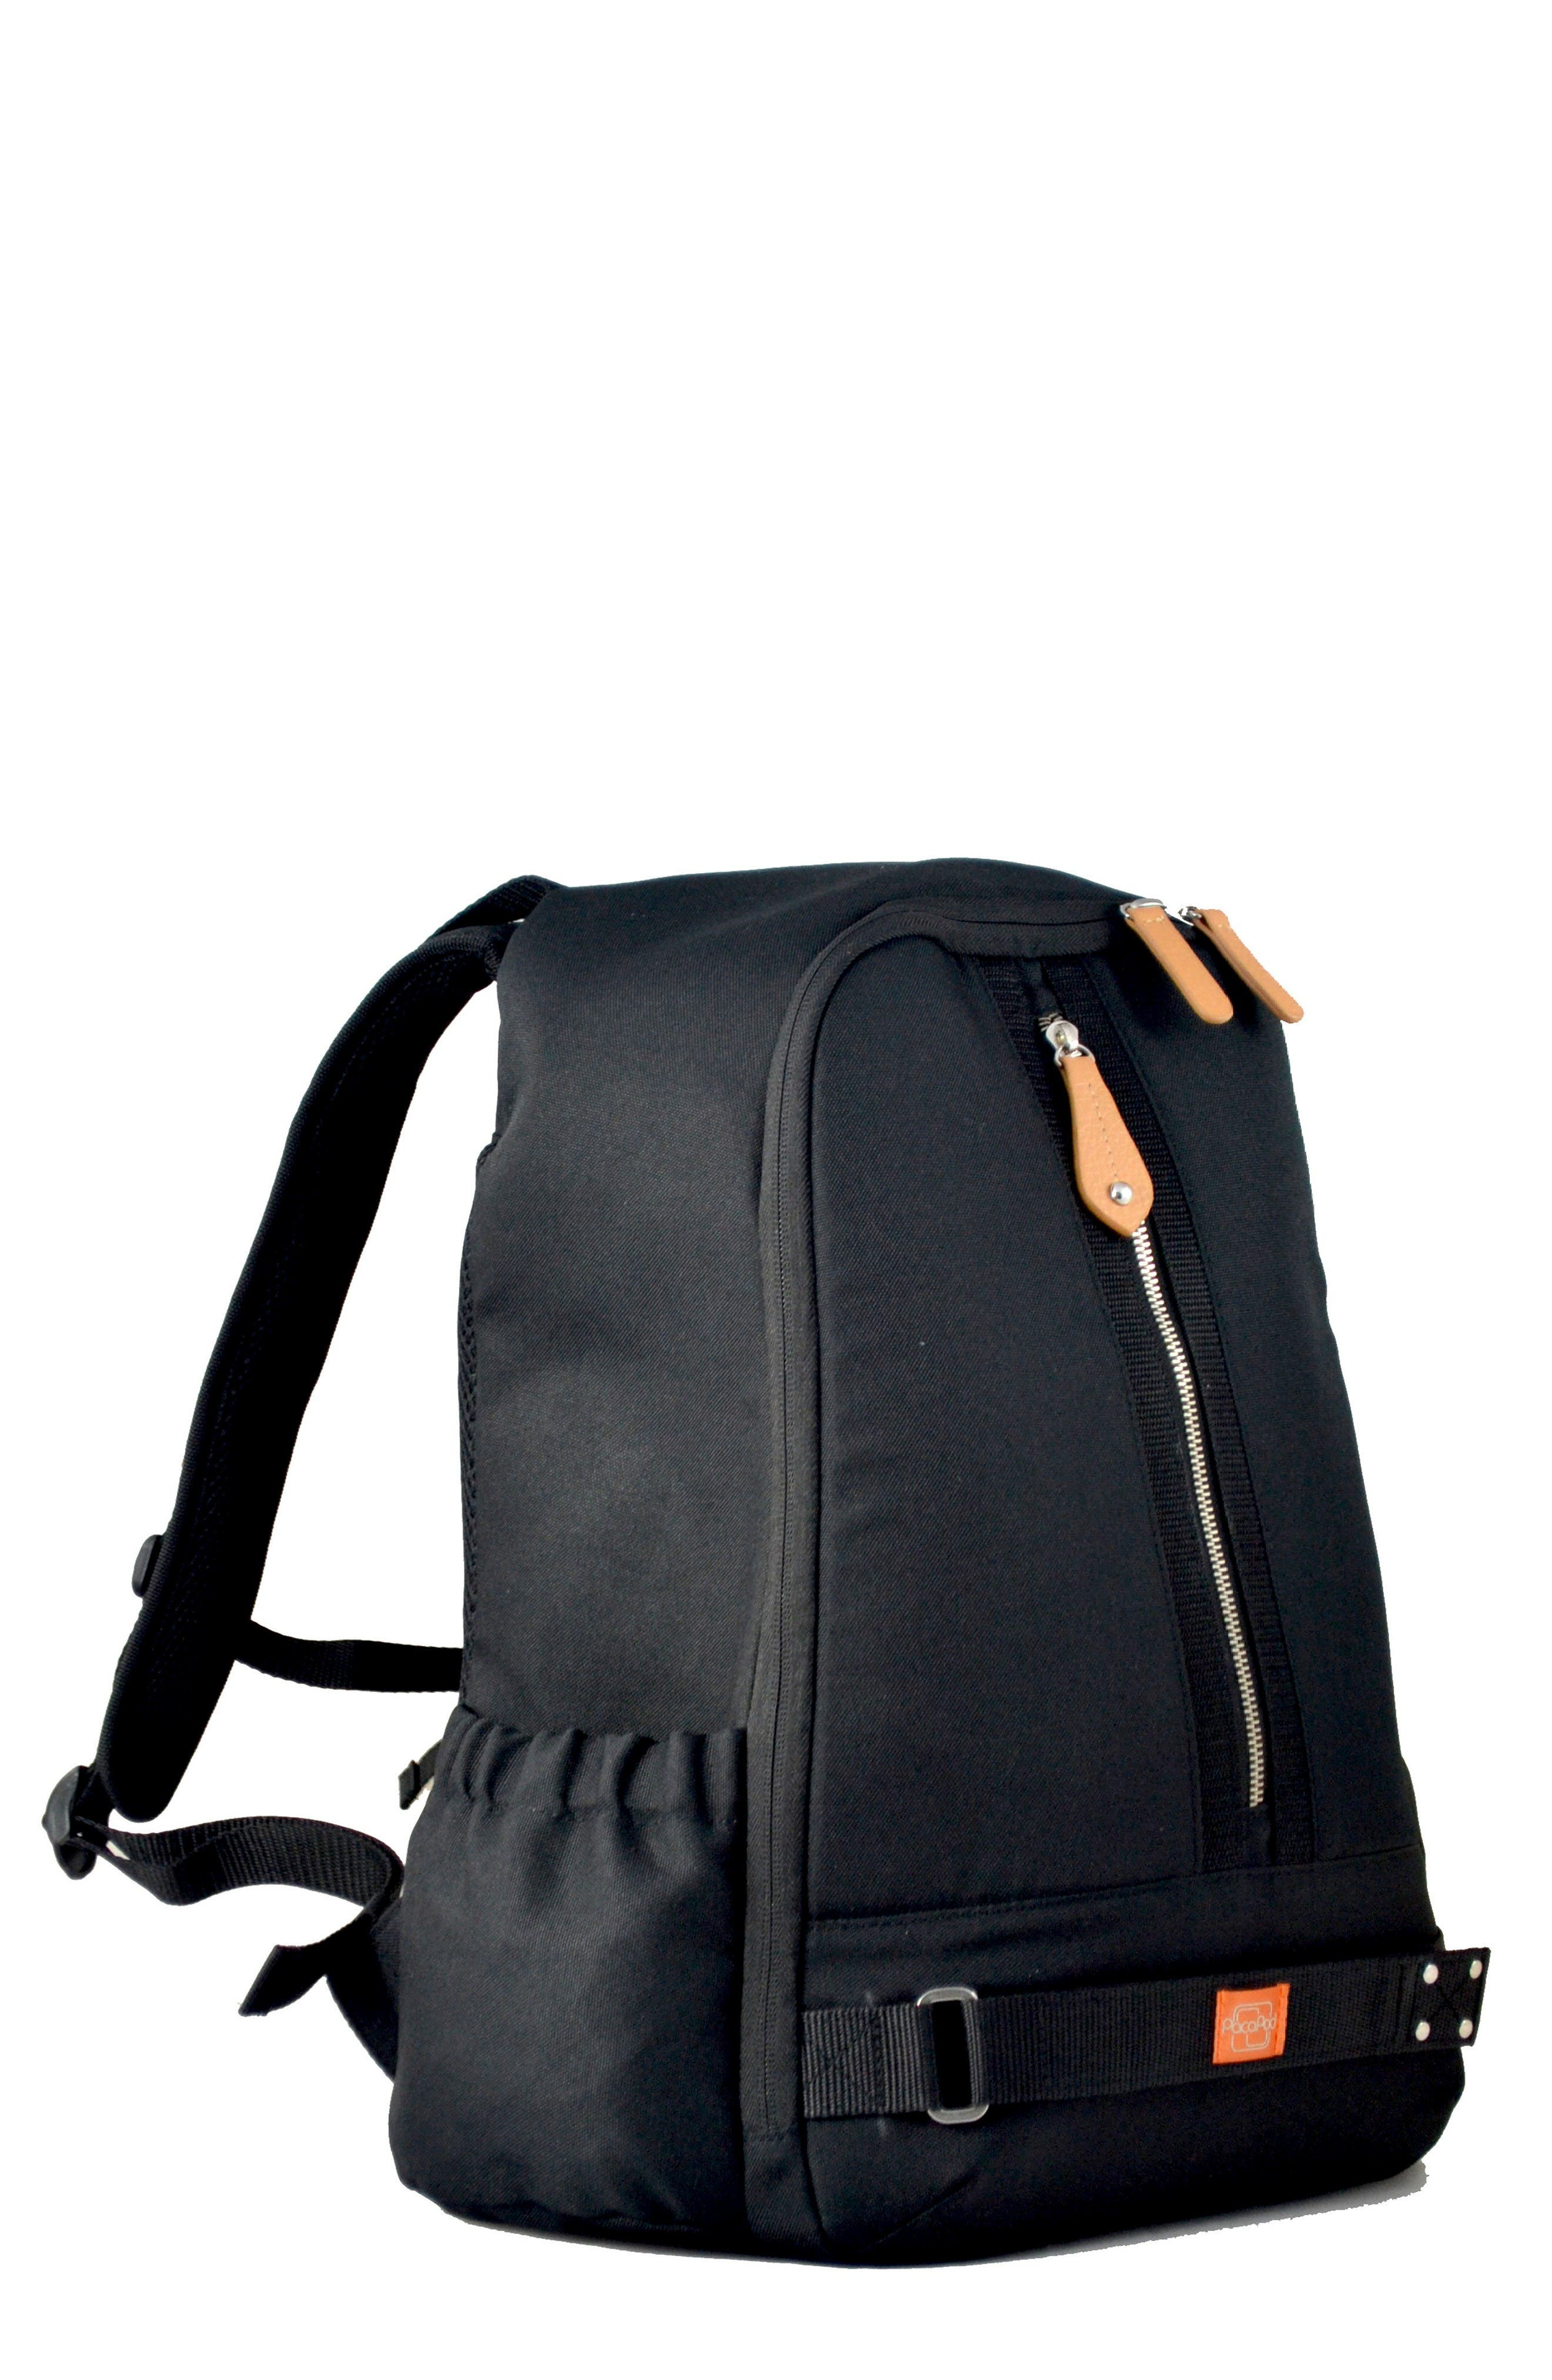 Alternate Image 1 Selected - PacaPod Picos Pack Diaper Backpack